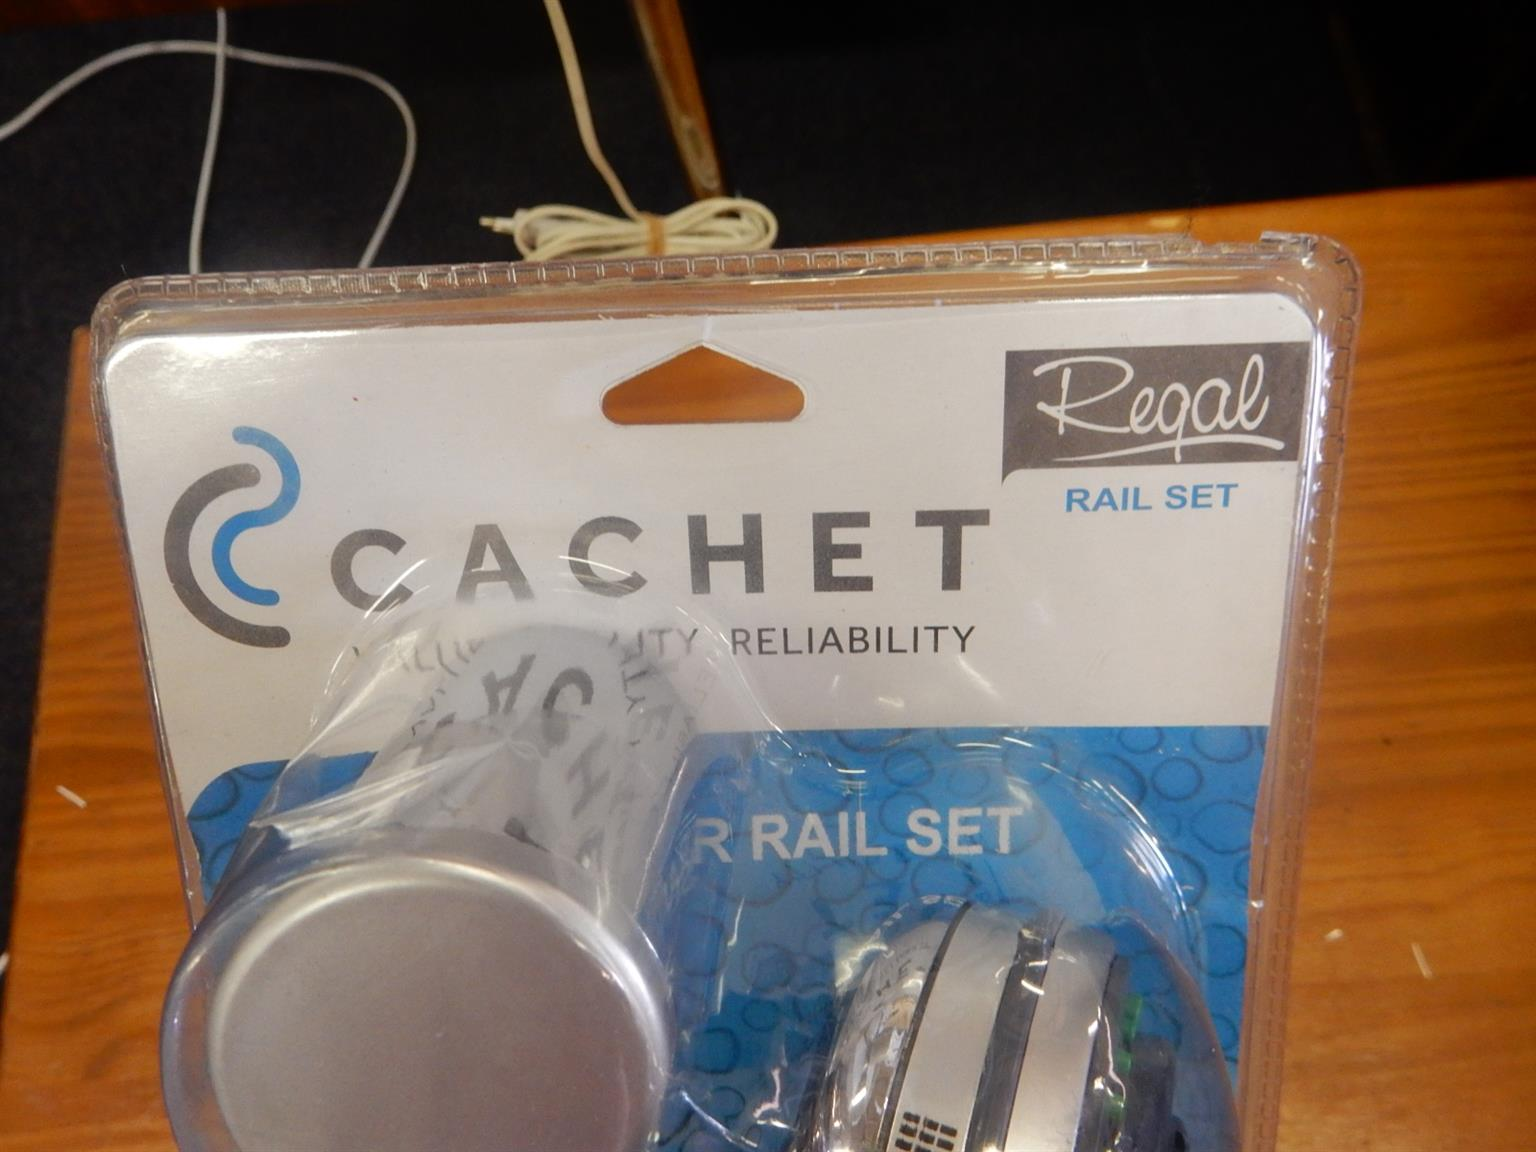 Brand new Cachet Regail Shower Head Rail Set